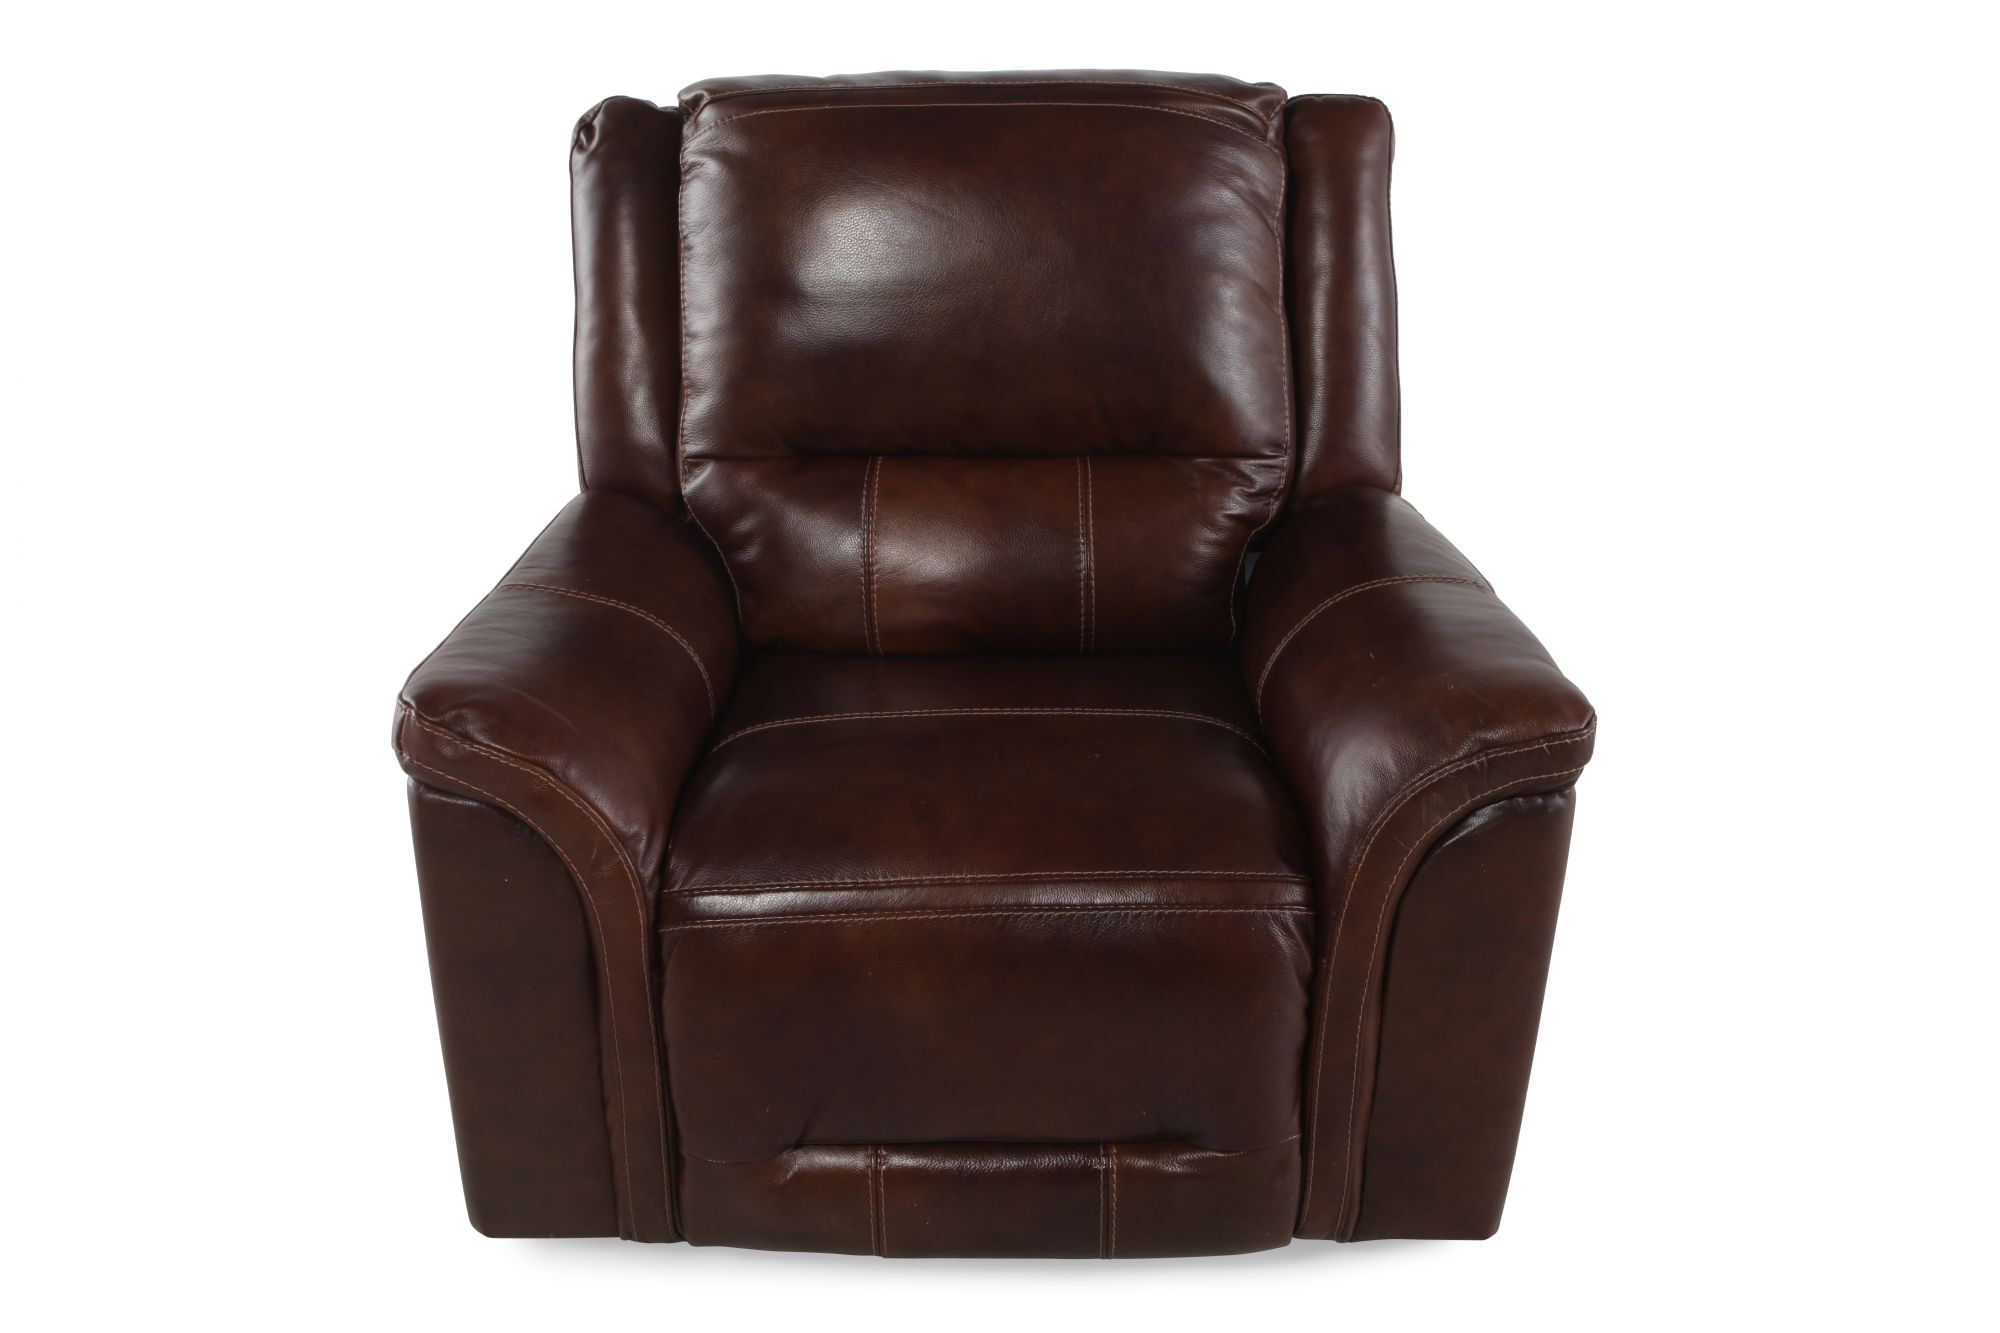 Leather 42 Power Recliner in Dark Saddle Brown  Mathis